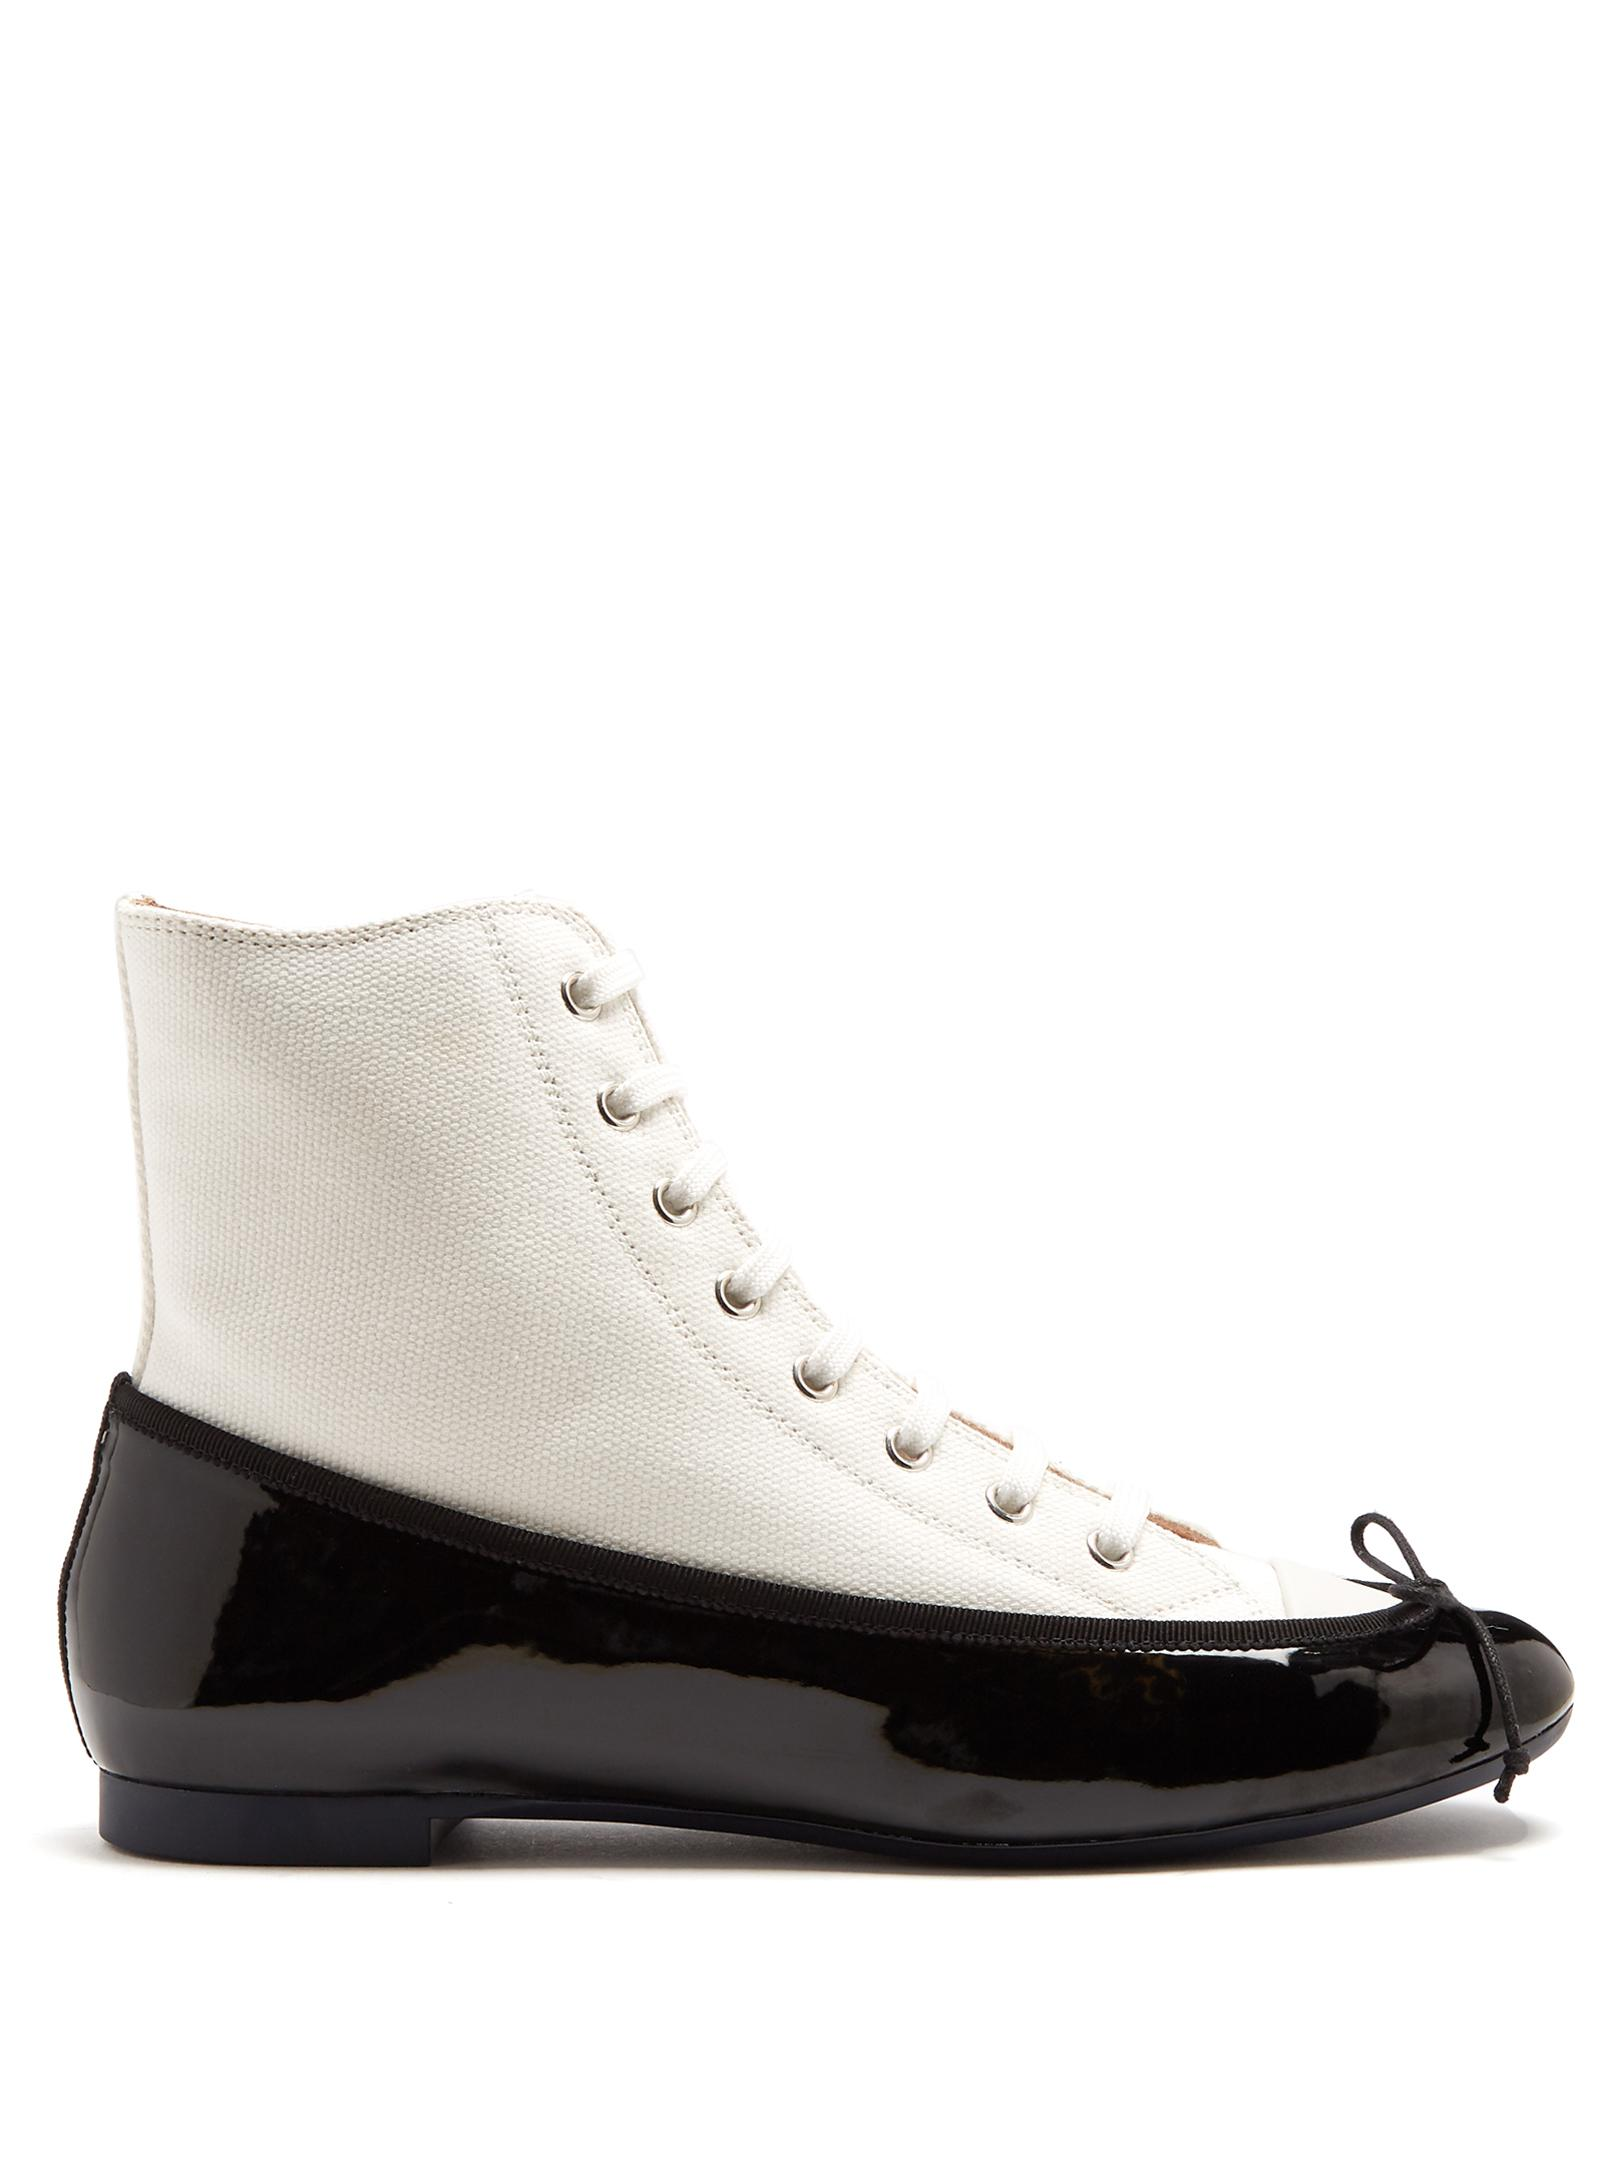 MARCO DE VINCENZO Ballet high-top satin and leather trainers Outlet Manchester Great Sale Buy Cheap 2018 New Clearance Fashion Style Buy Cheap The Cheapest 8wUx9dNq